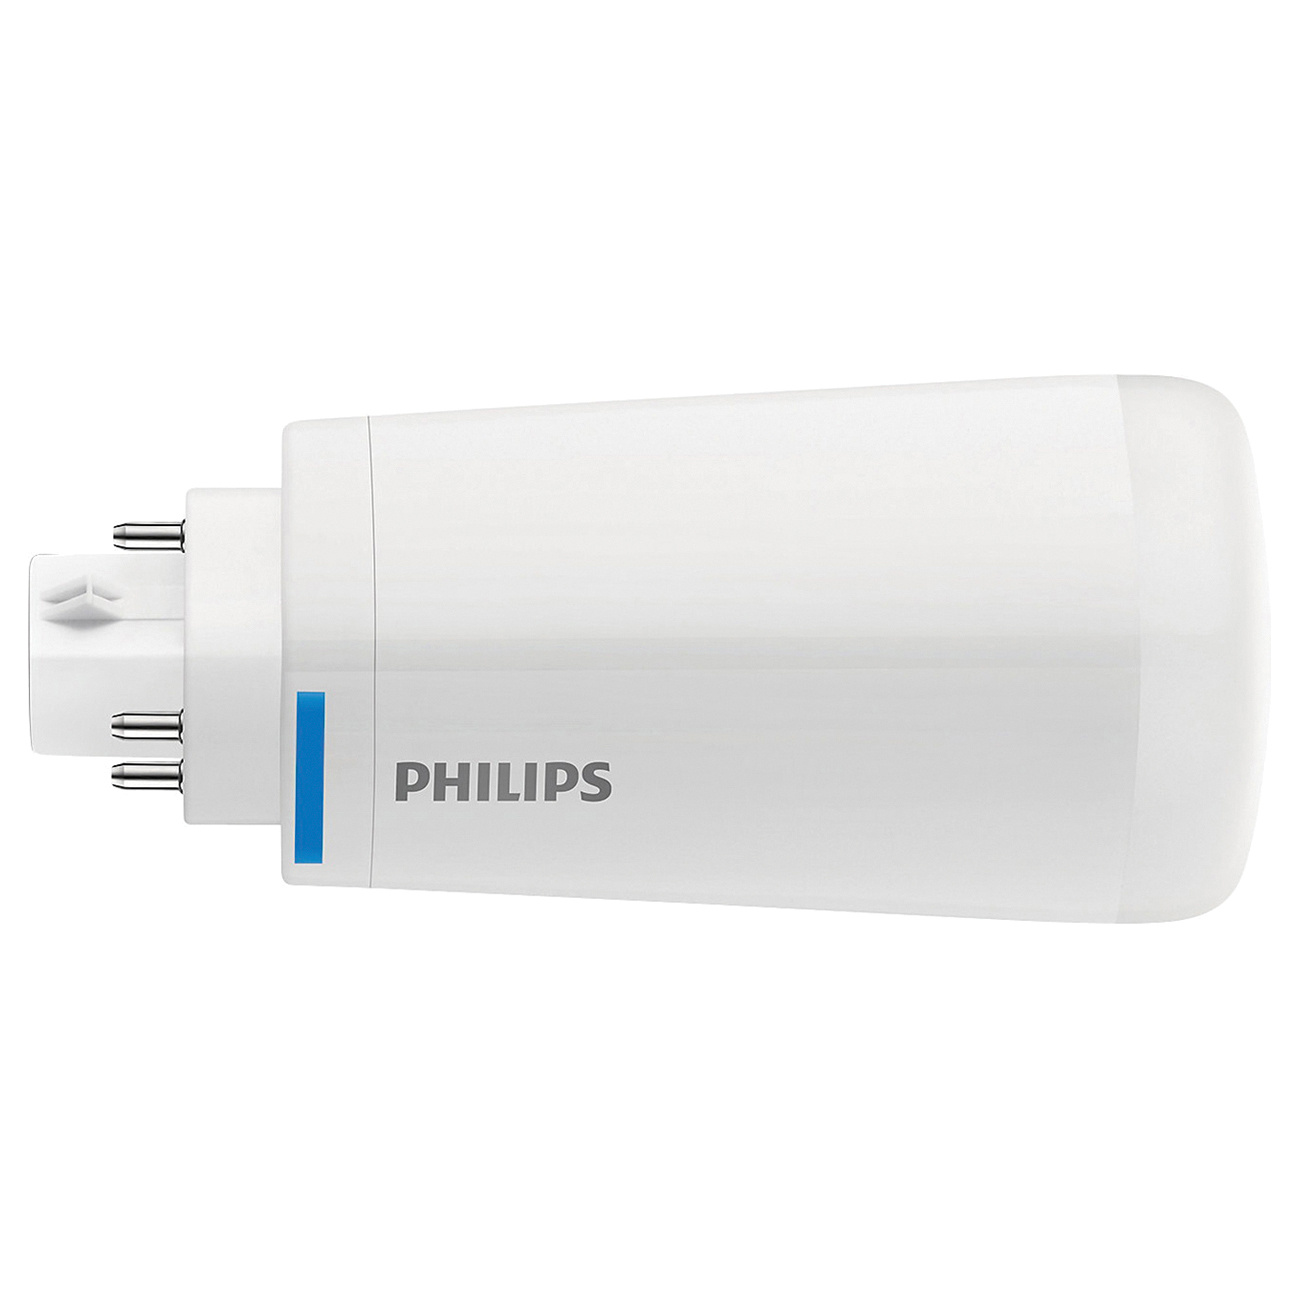 hight resolution of philips lighting 476127 dimmable vertical instantfit led lamp 4 pin g24q gx24q 12